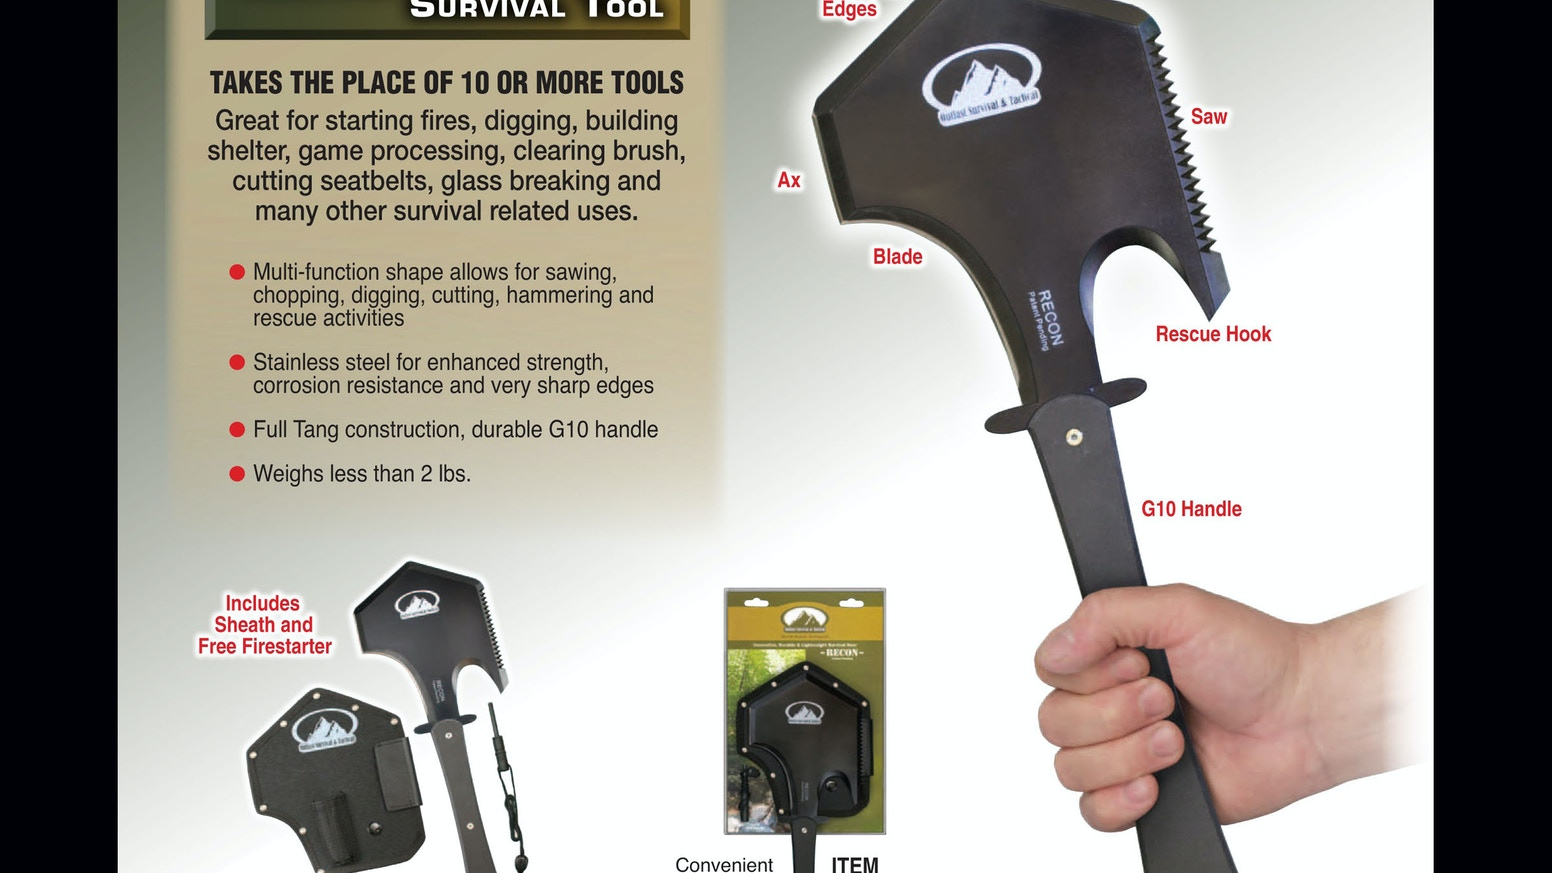 This innovative, lightweight and durable multi-function device can take the place of 10 or more outdoor tools.